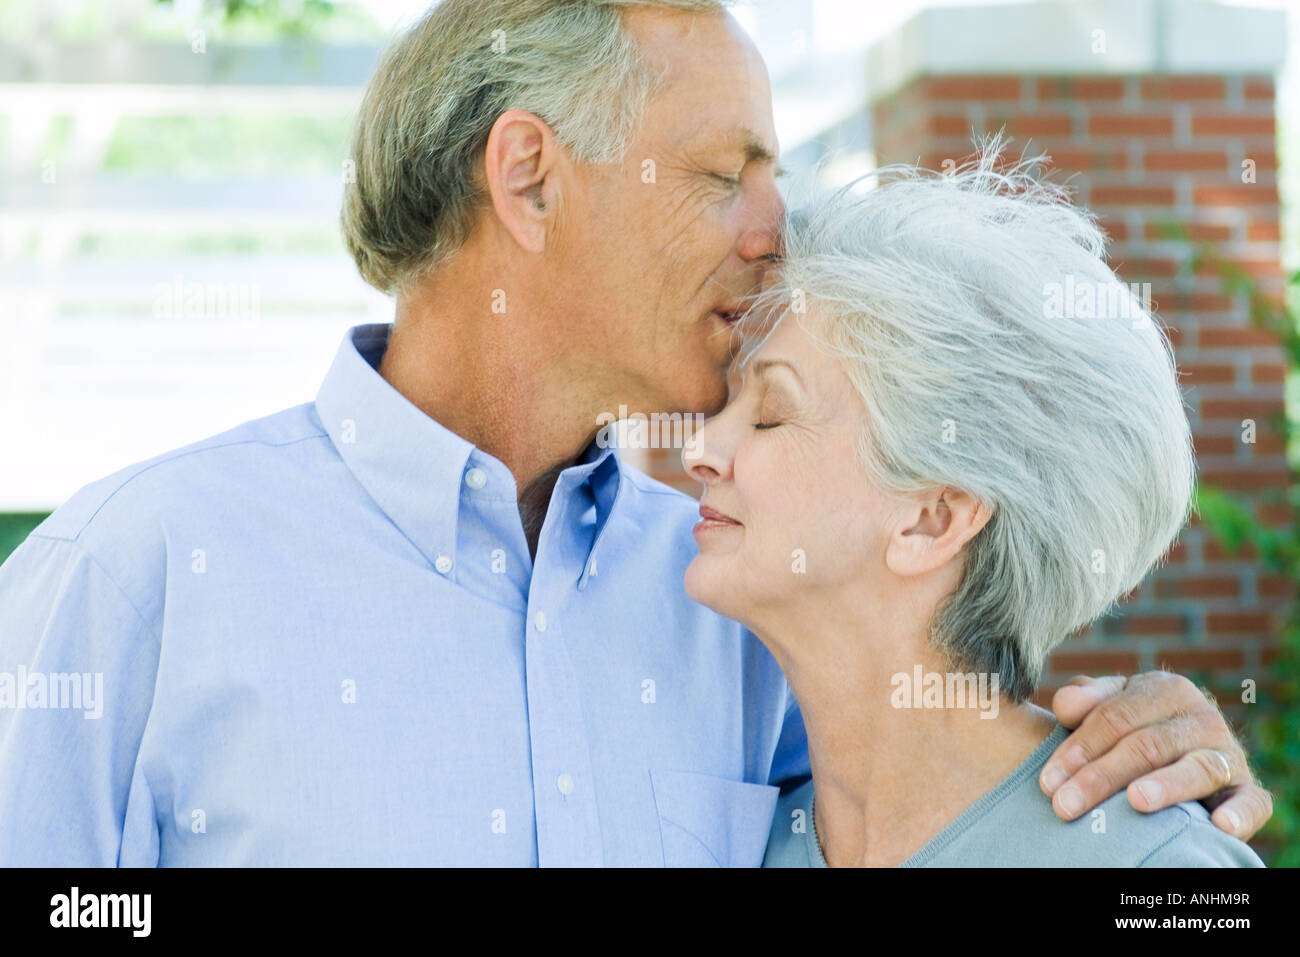 Mature man kissing wife's forehead, side view - Stock Image